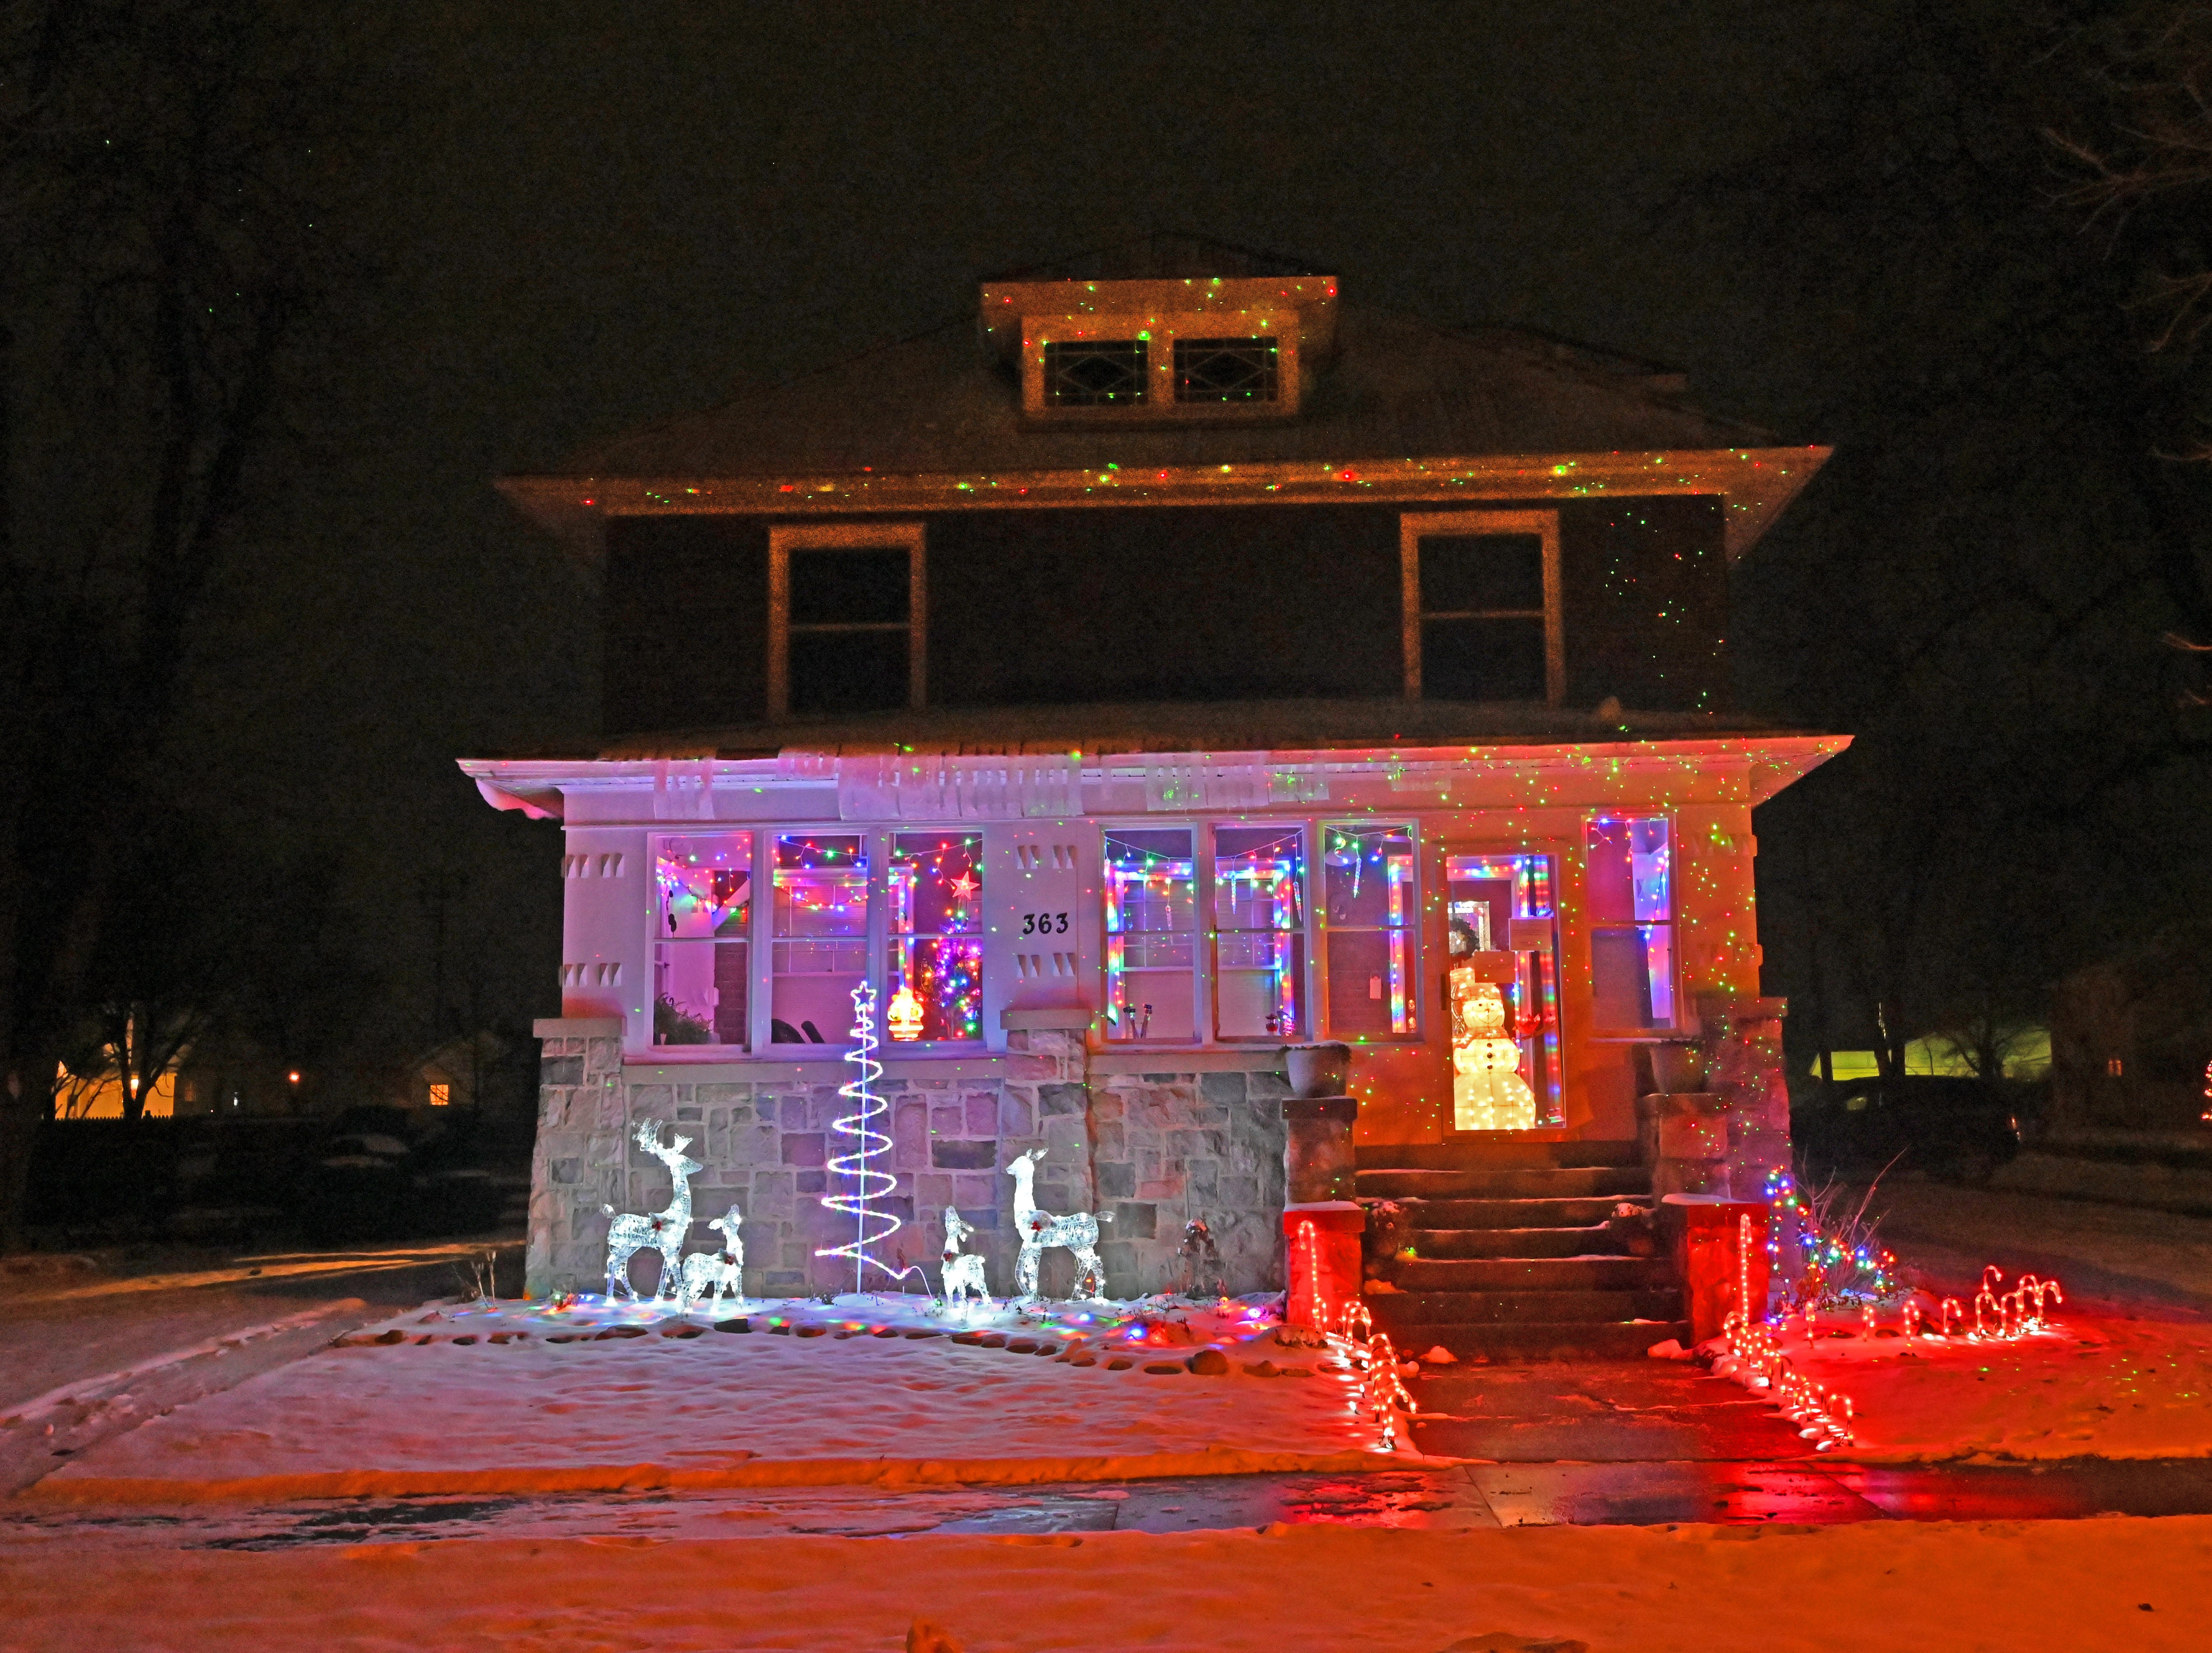 Traditional Christmas lights — including candy canes, reindeer and snowmen — decorate this home on Main Street in Fowler, Michigan.